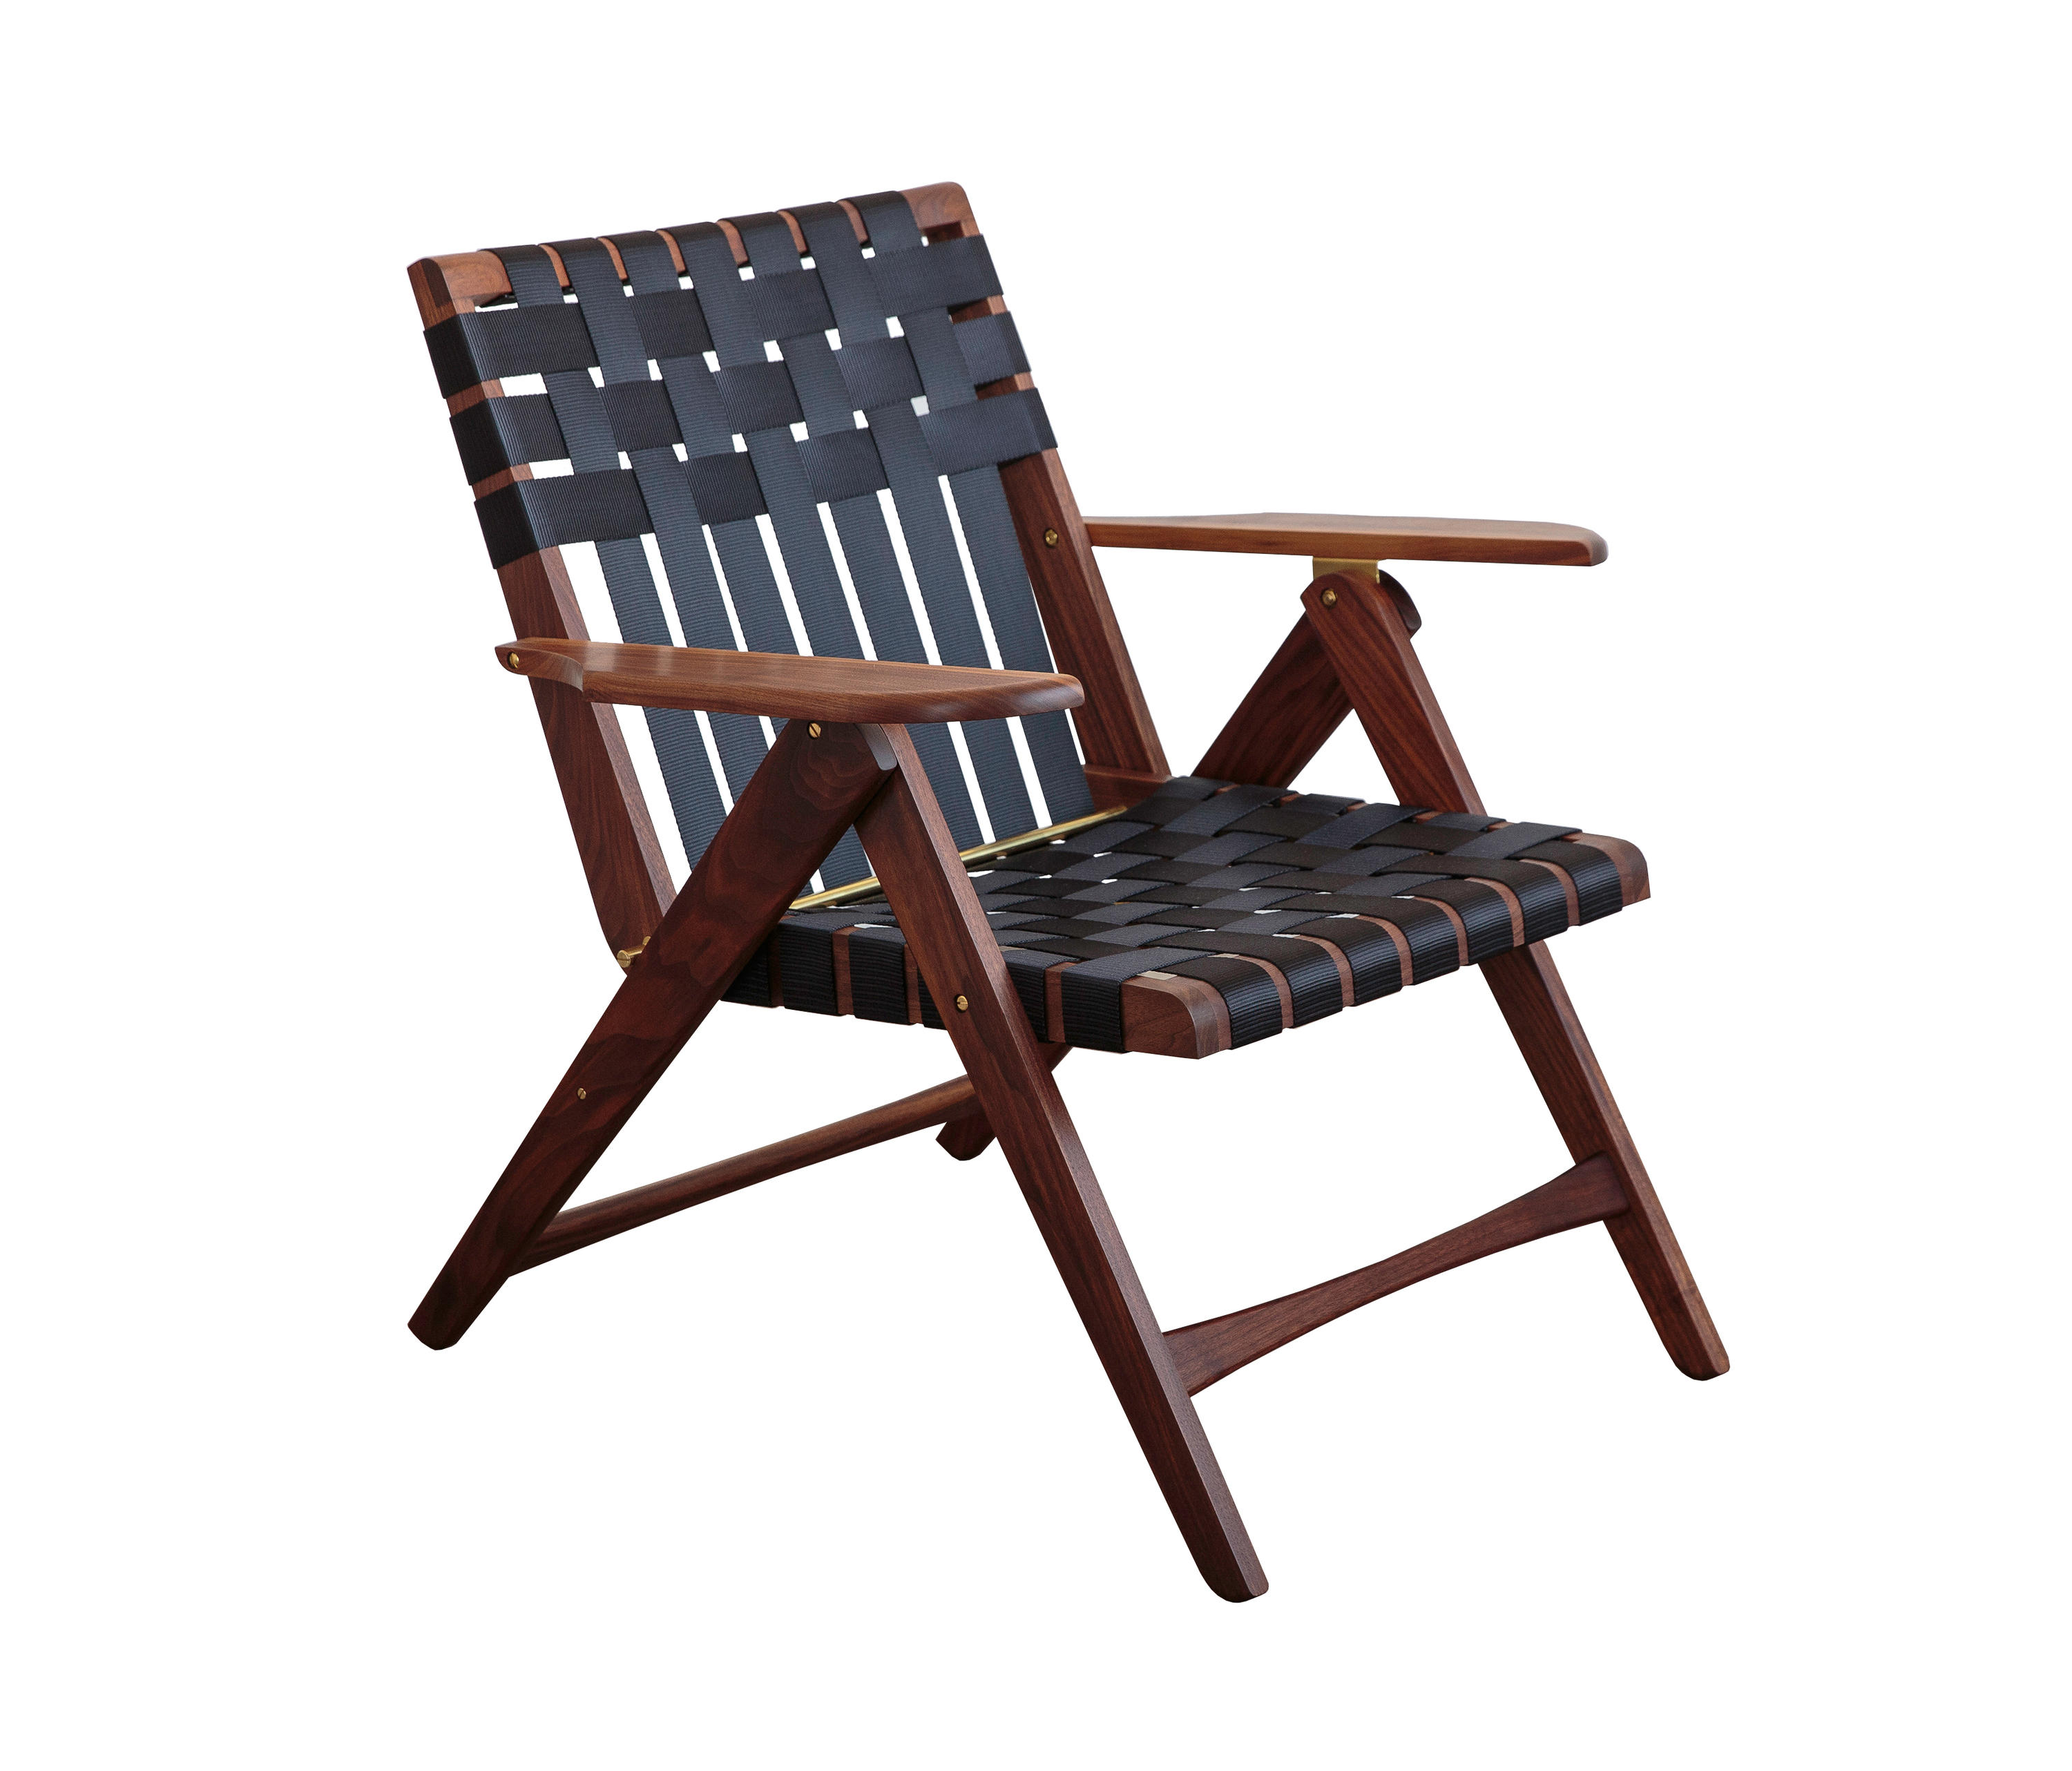 FOLDING LOUNGE CHAIR WALNUT Lounge chairs from Todd St